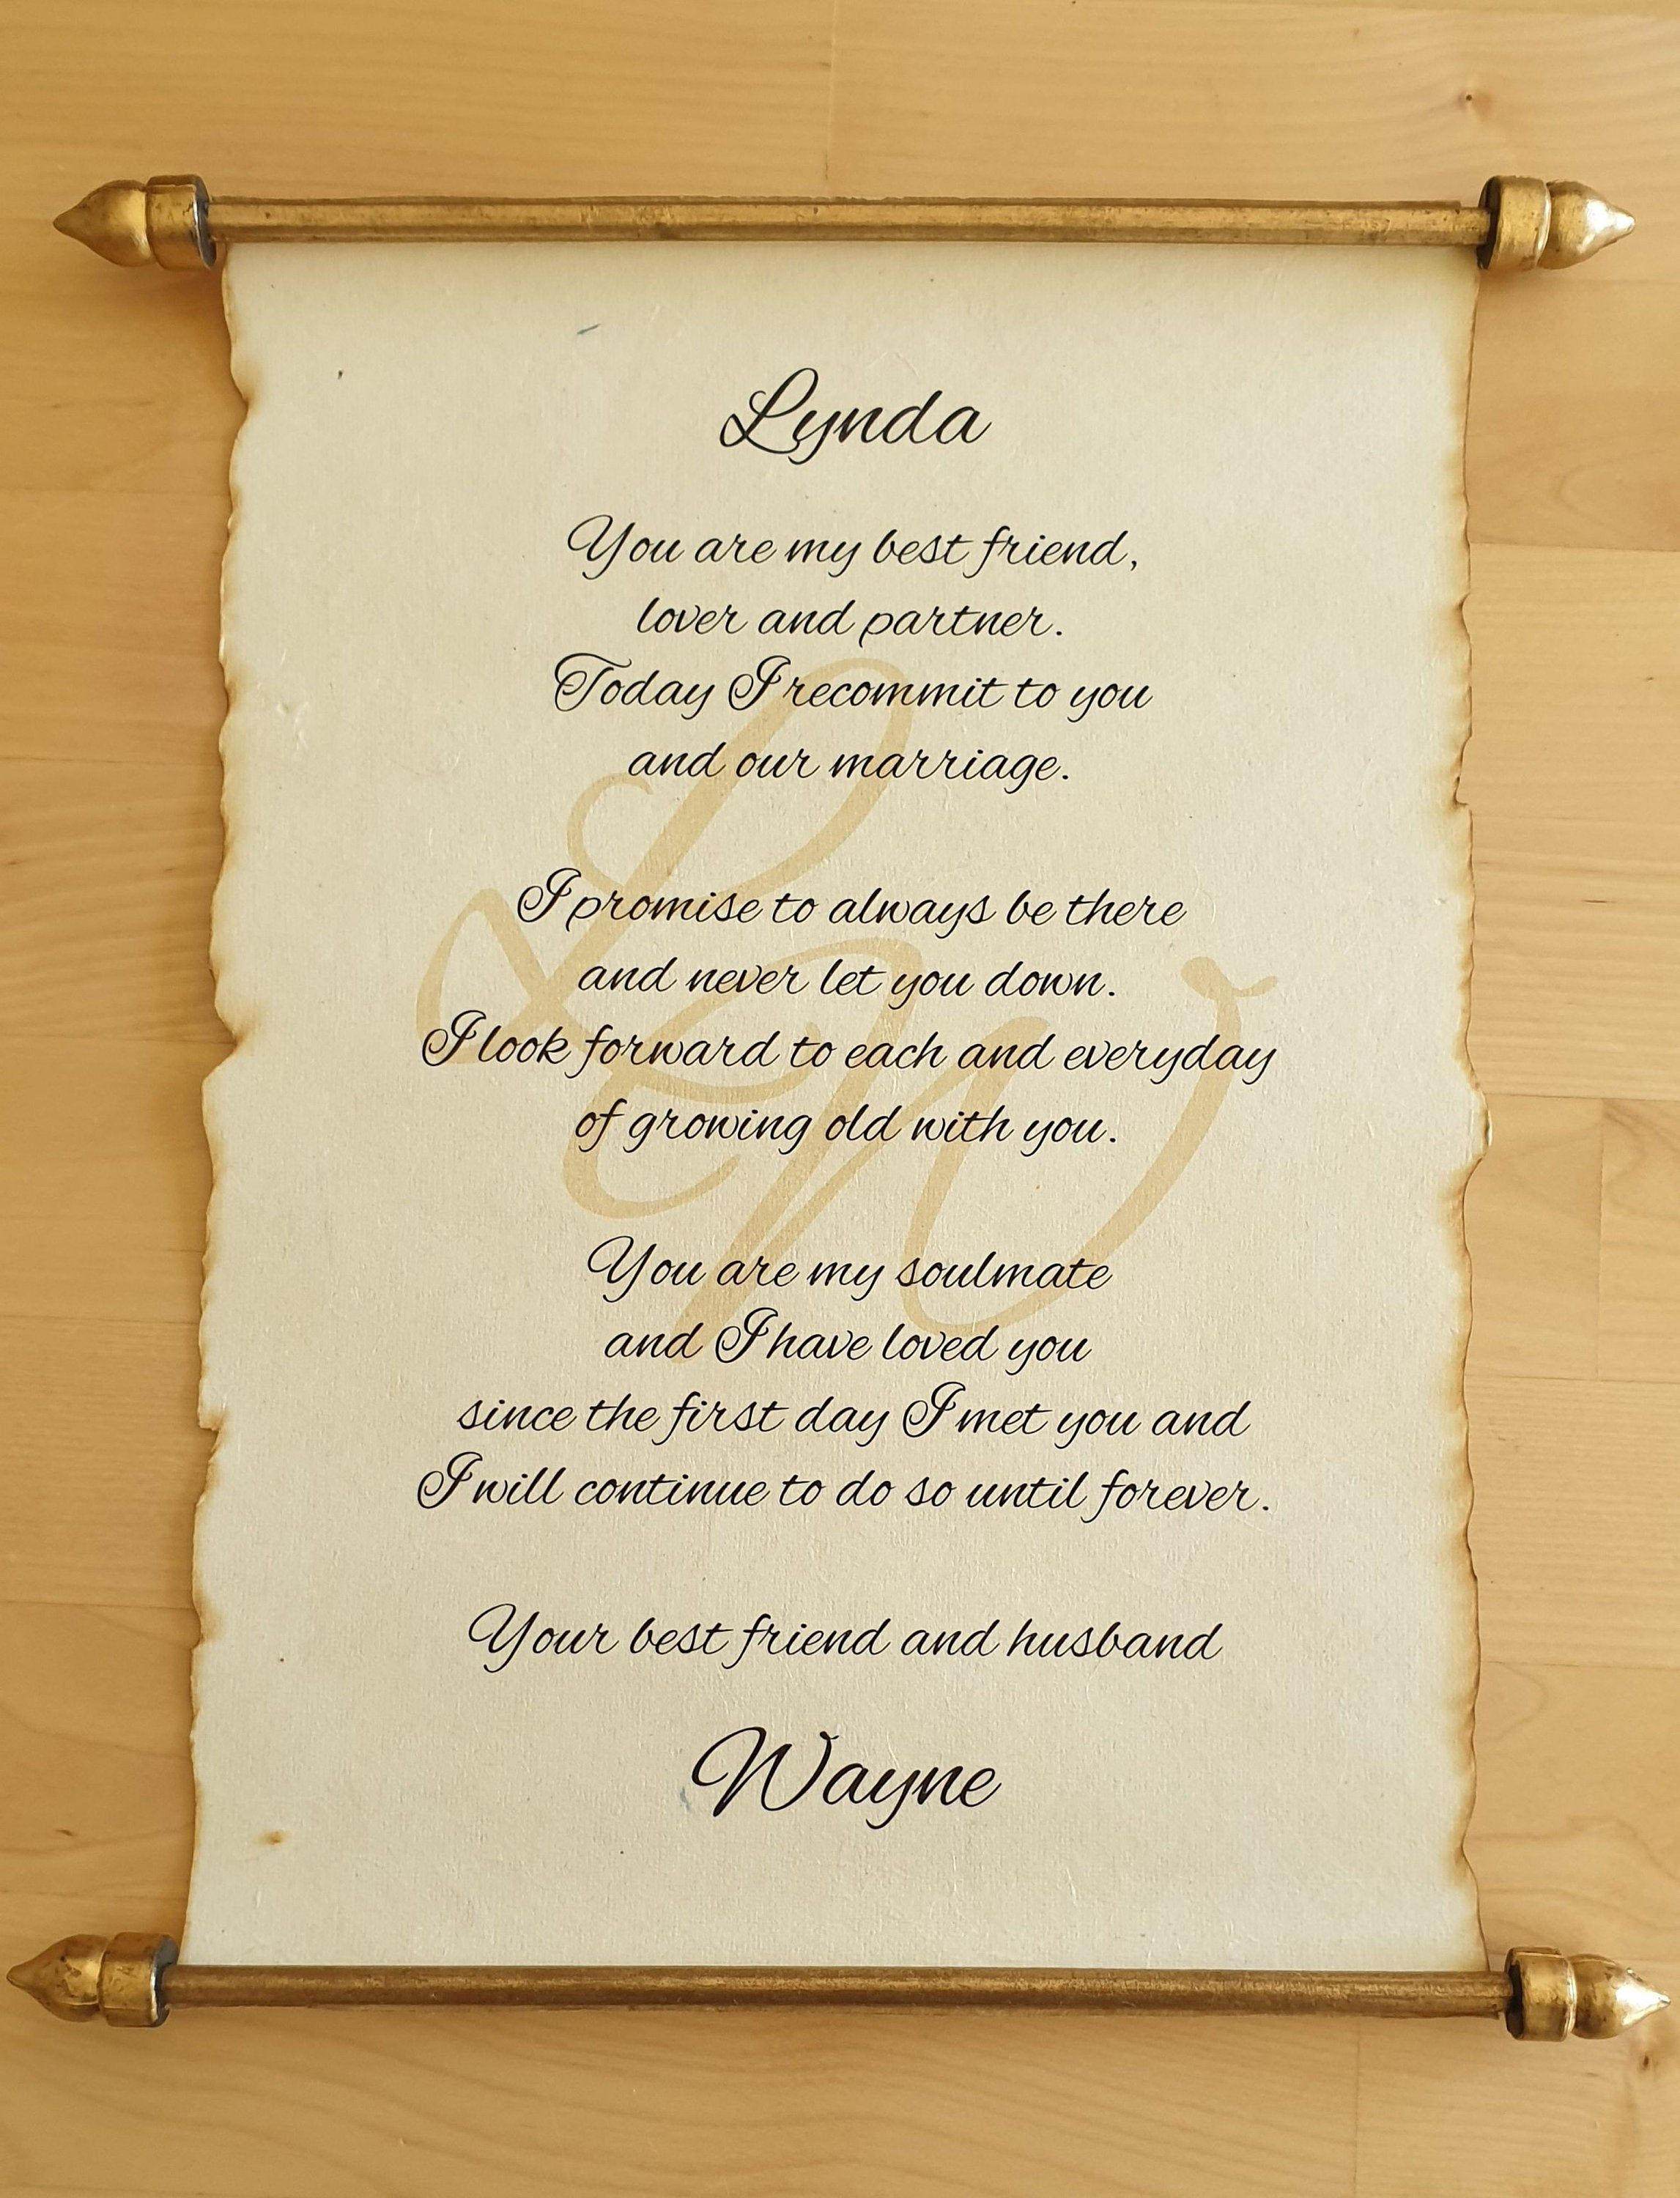 Wedding vows print scroll gift. Vintage proposal vow